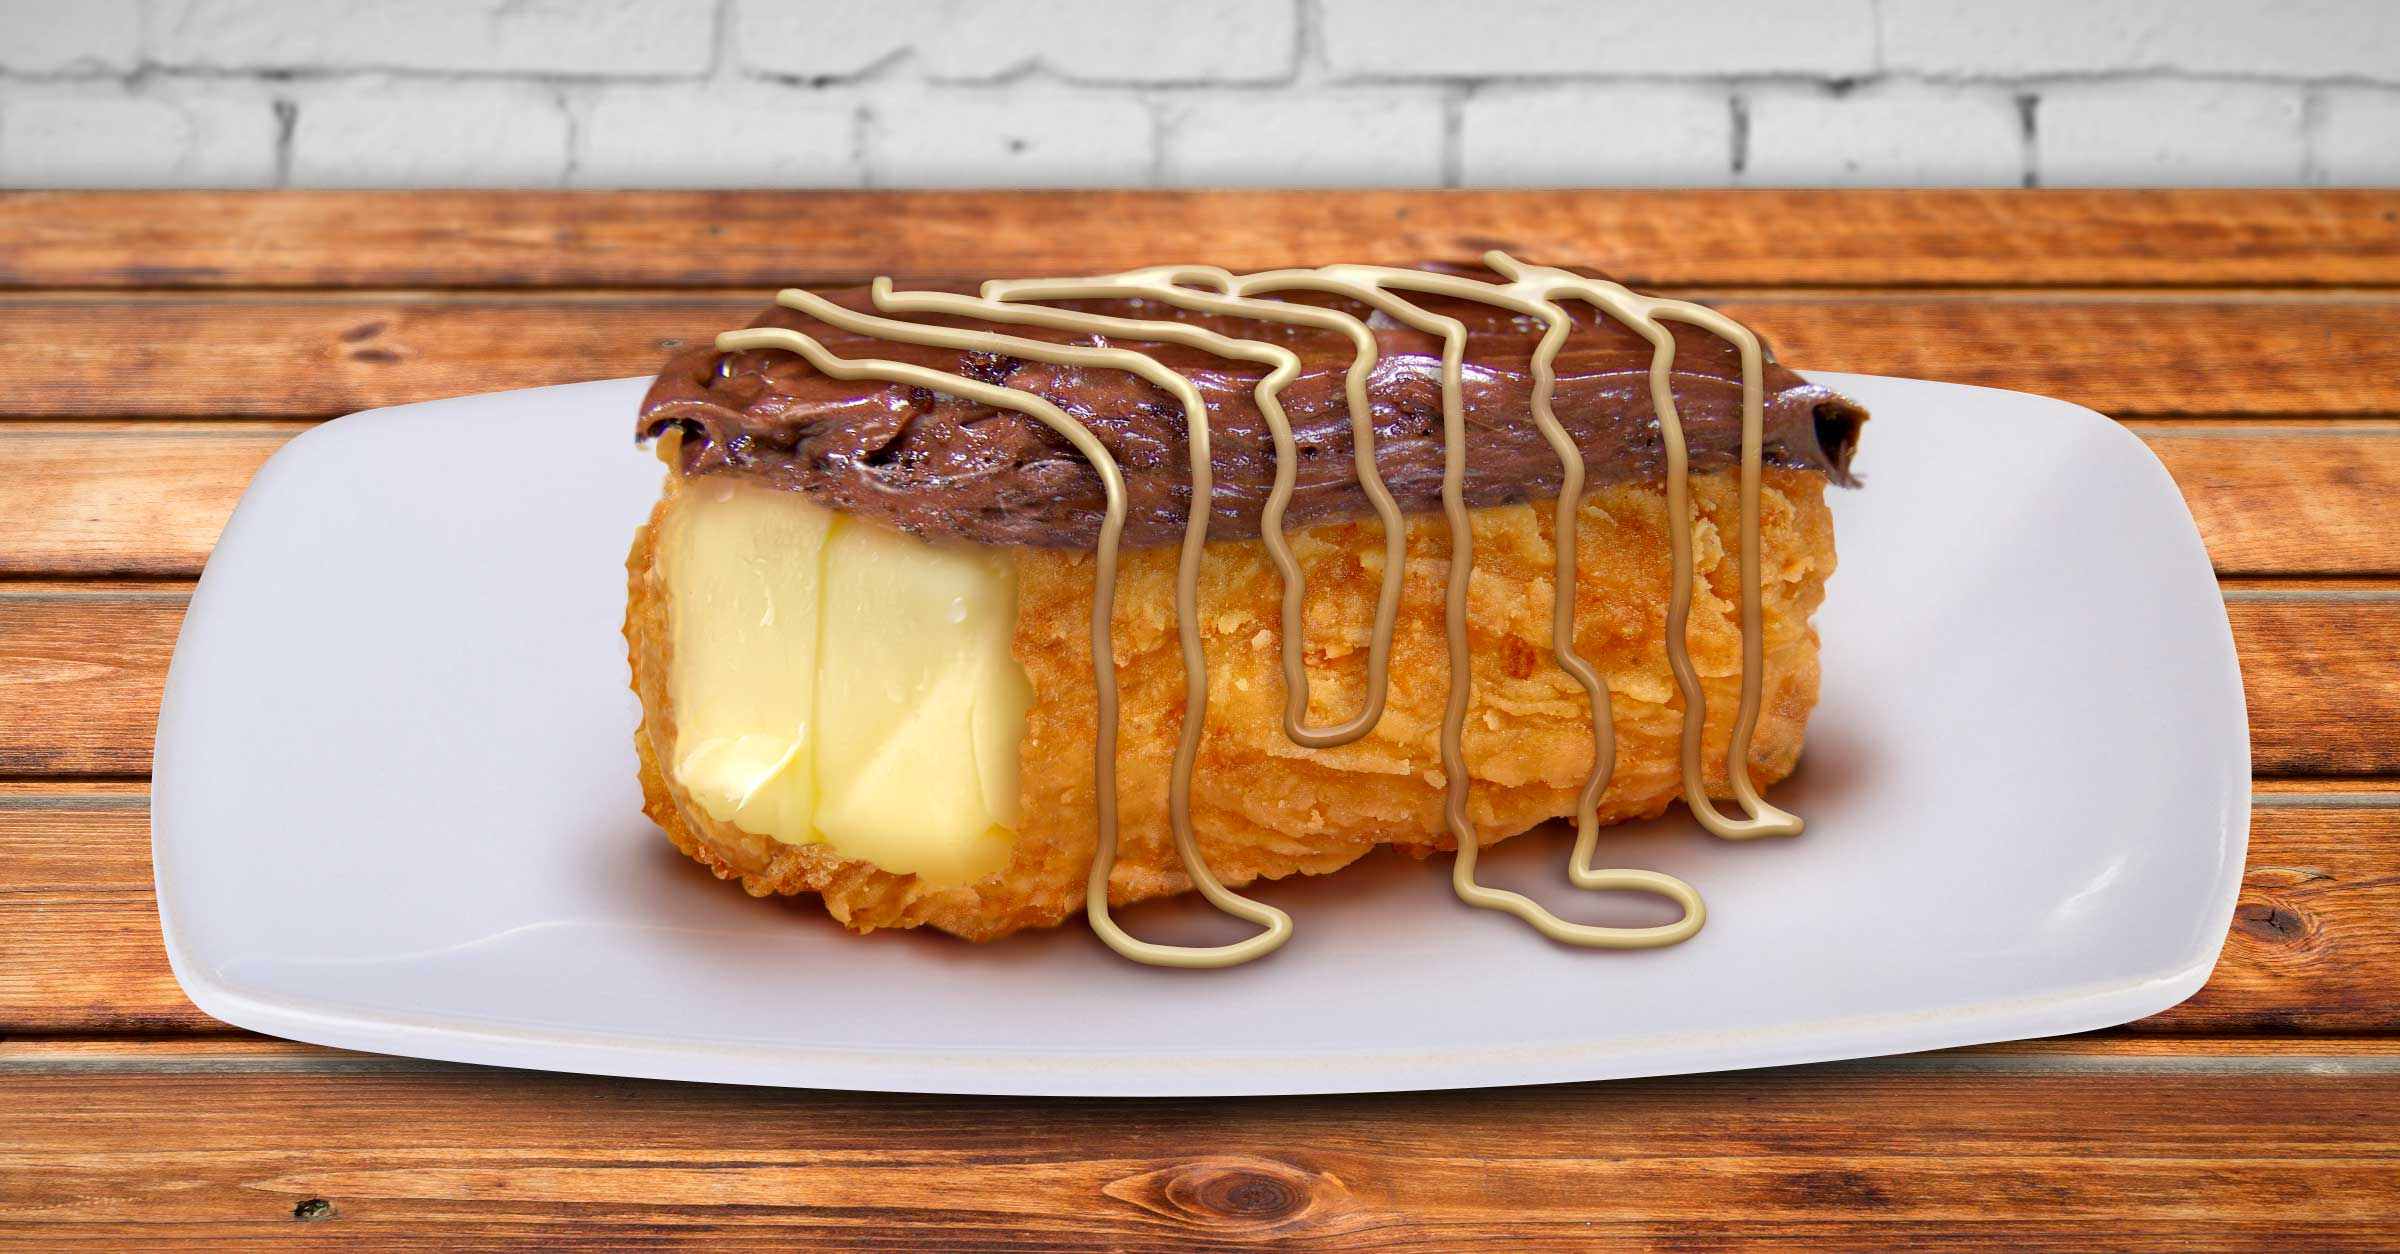 Breaded-Deep-Fried-Chocolate-Covered-Butter-Stick-with-Sweet-Lard-Drizzle-1_0_0.jpg